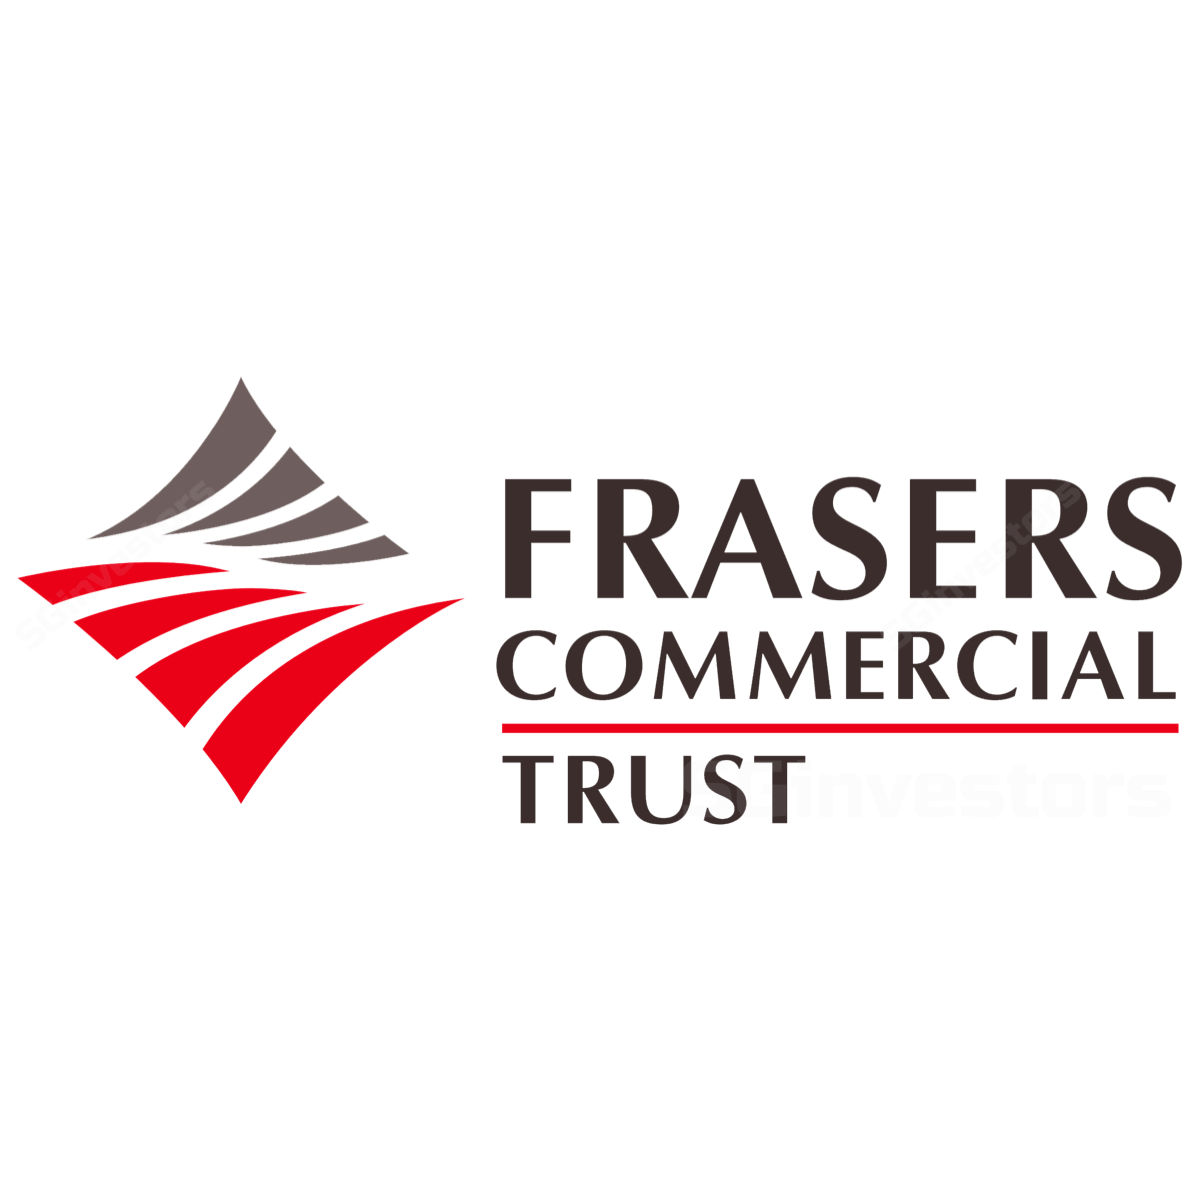 Frasers Commercial Trust - DBS Vickers 2018-04-23: Repositioned For Growth